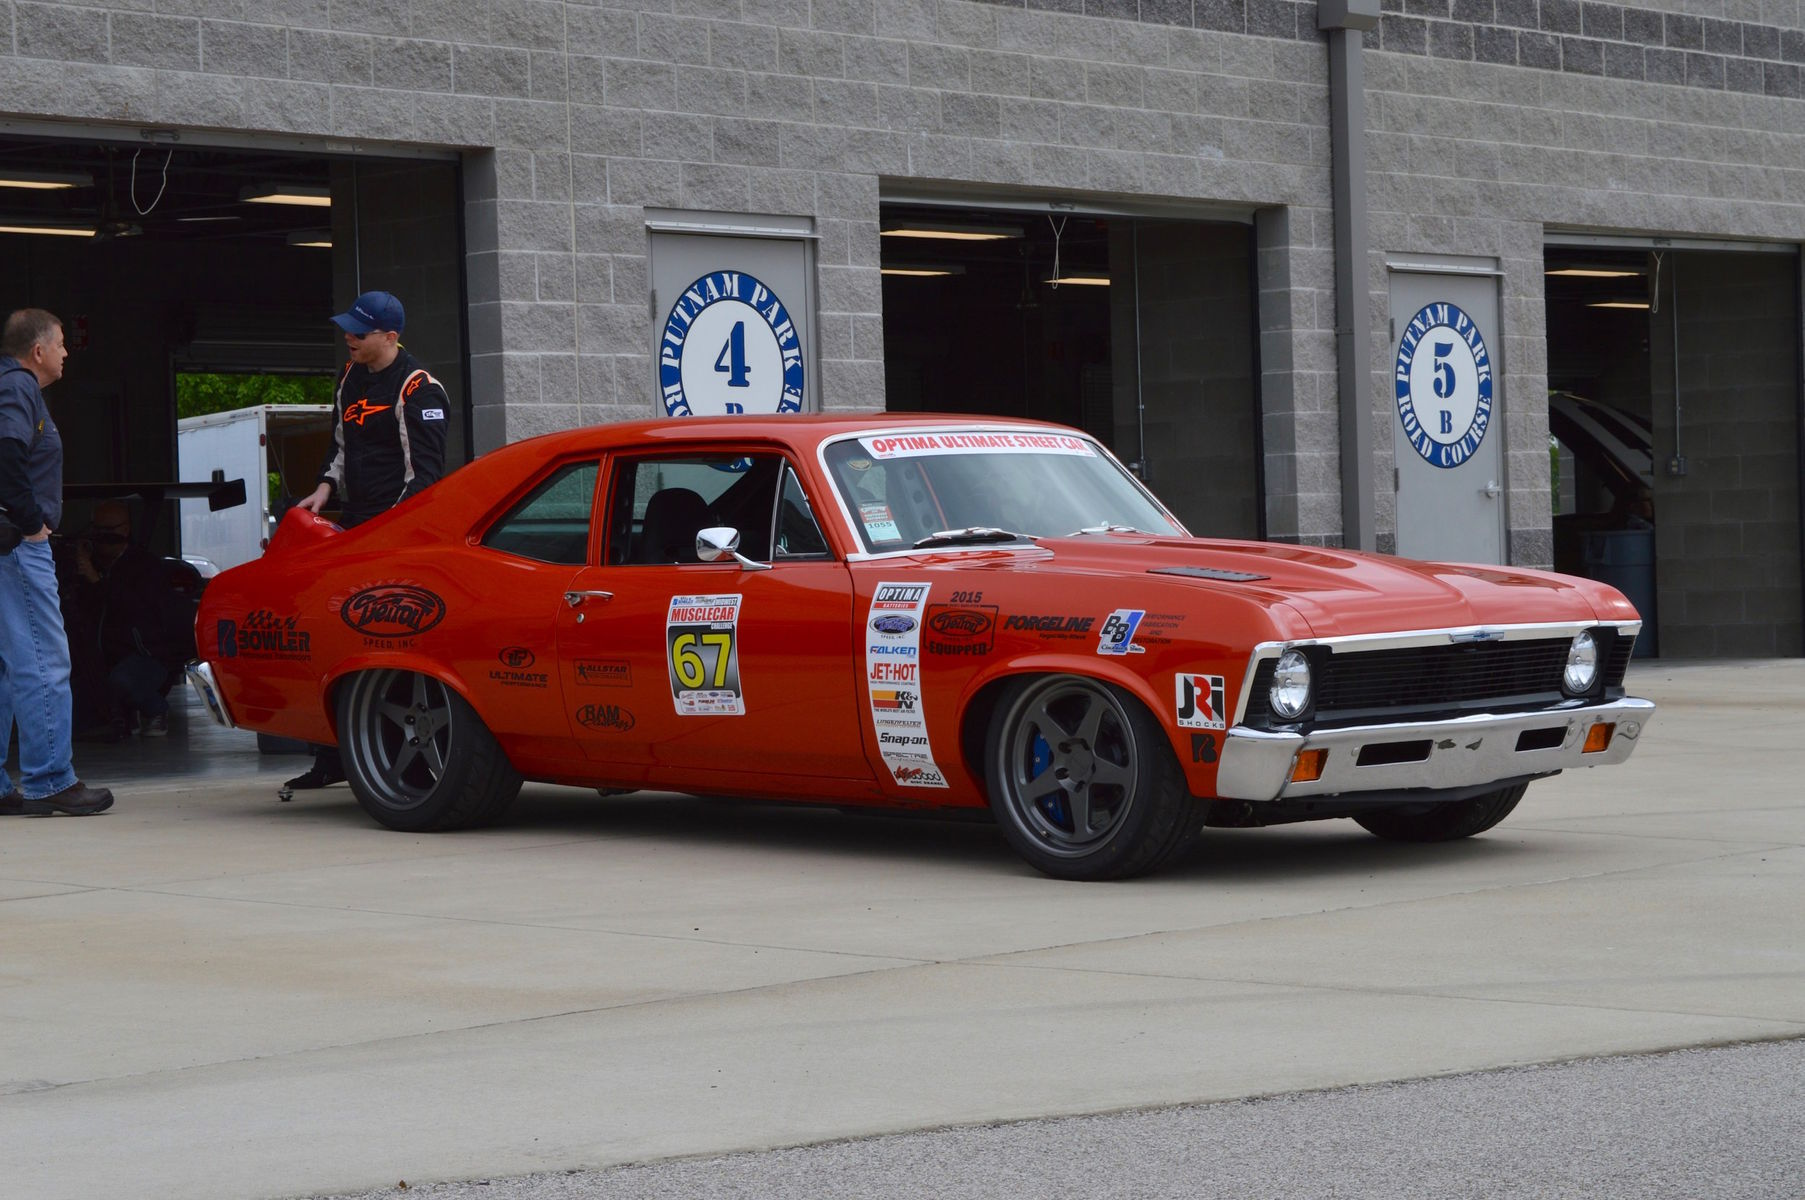 1972 Chevrolet Nova | Billy Utley's '72 Nova on Forgeline Heritage Series FF3 Wheels at the 2016 Midwest MuscleCar Challenge